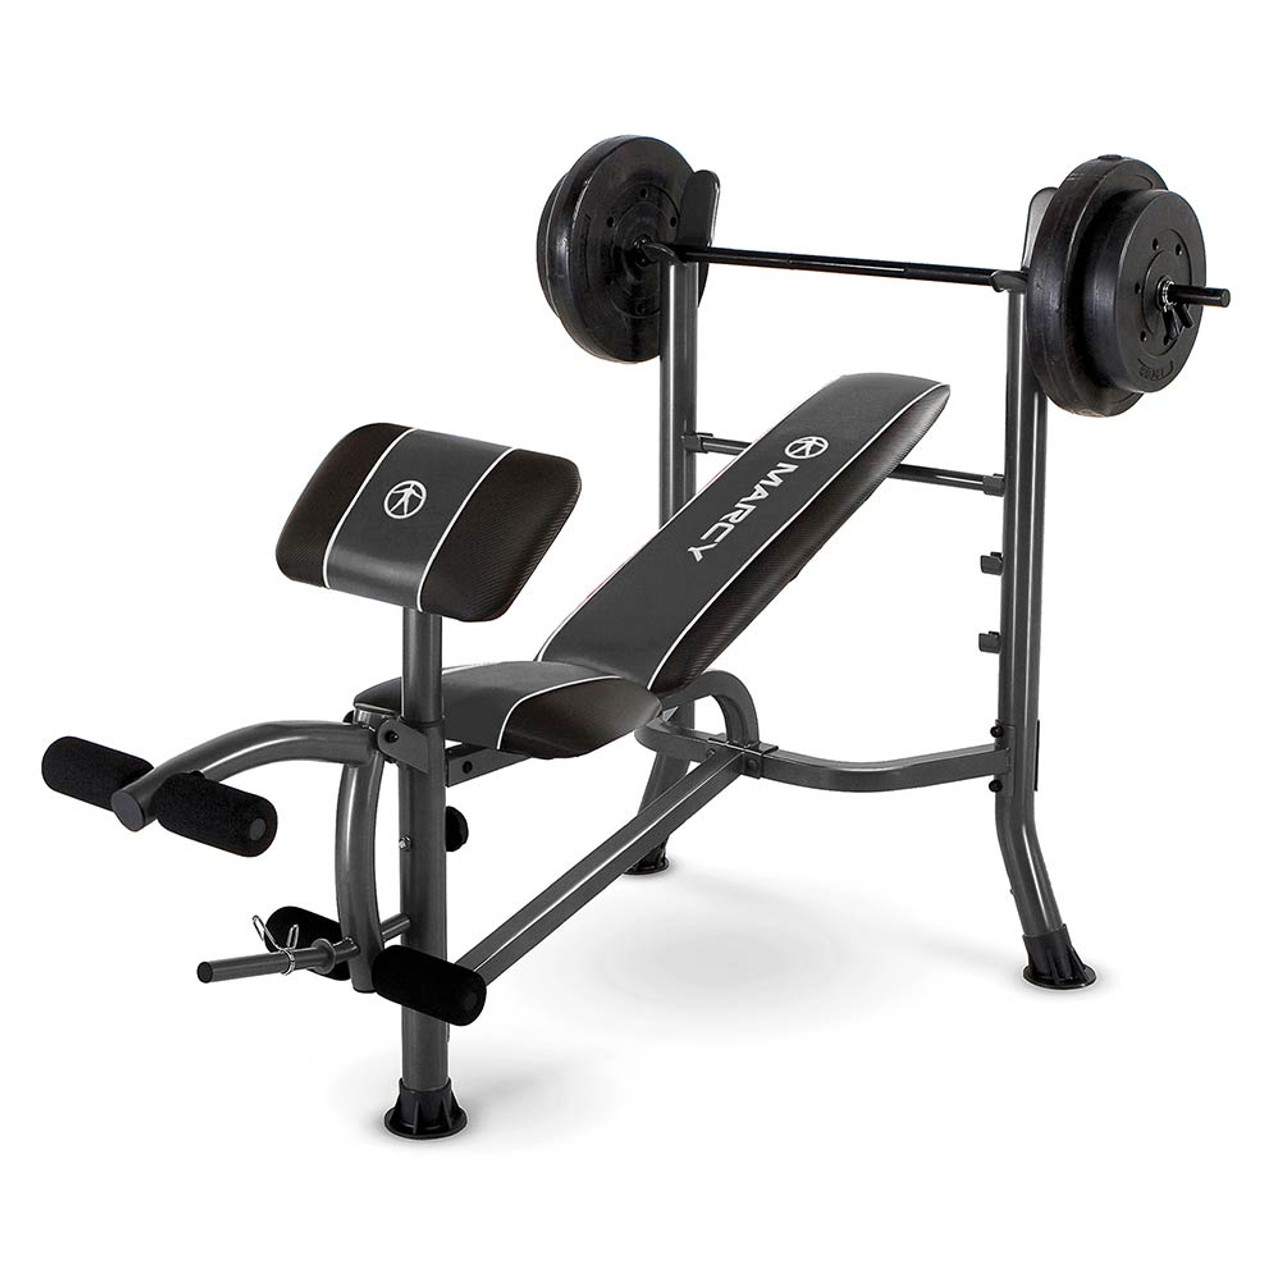 Weight Benches Bench Set For Sale Mesmerizing With Ebay: Marcy Standard Bench W/ 80lb Weight Set Quality Strength